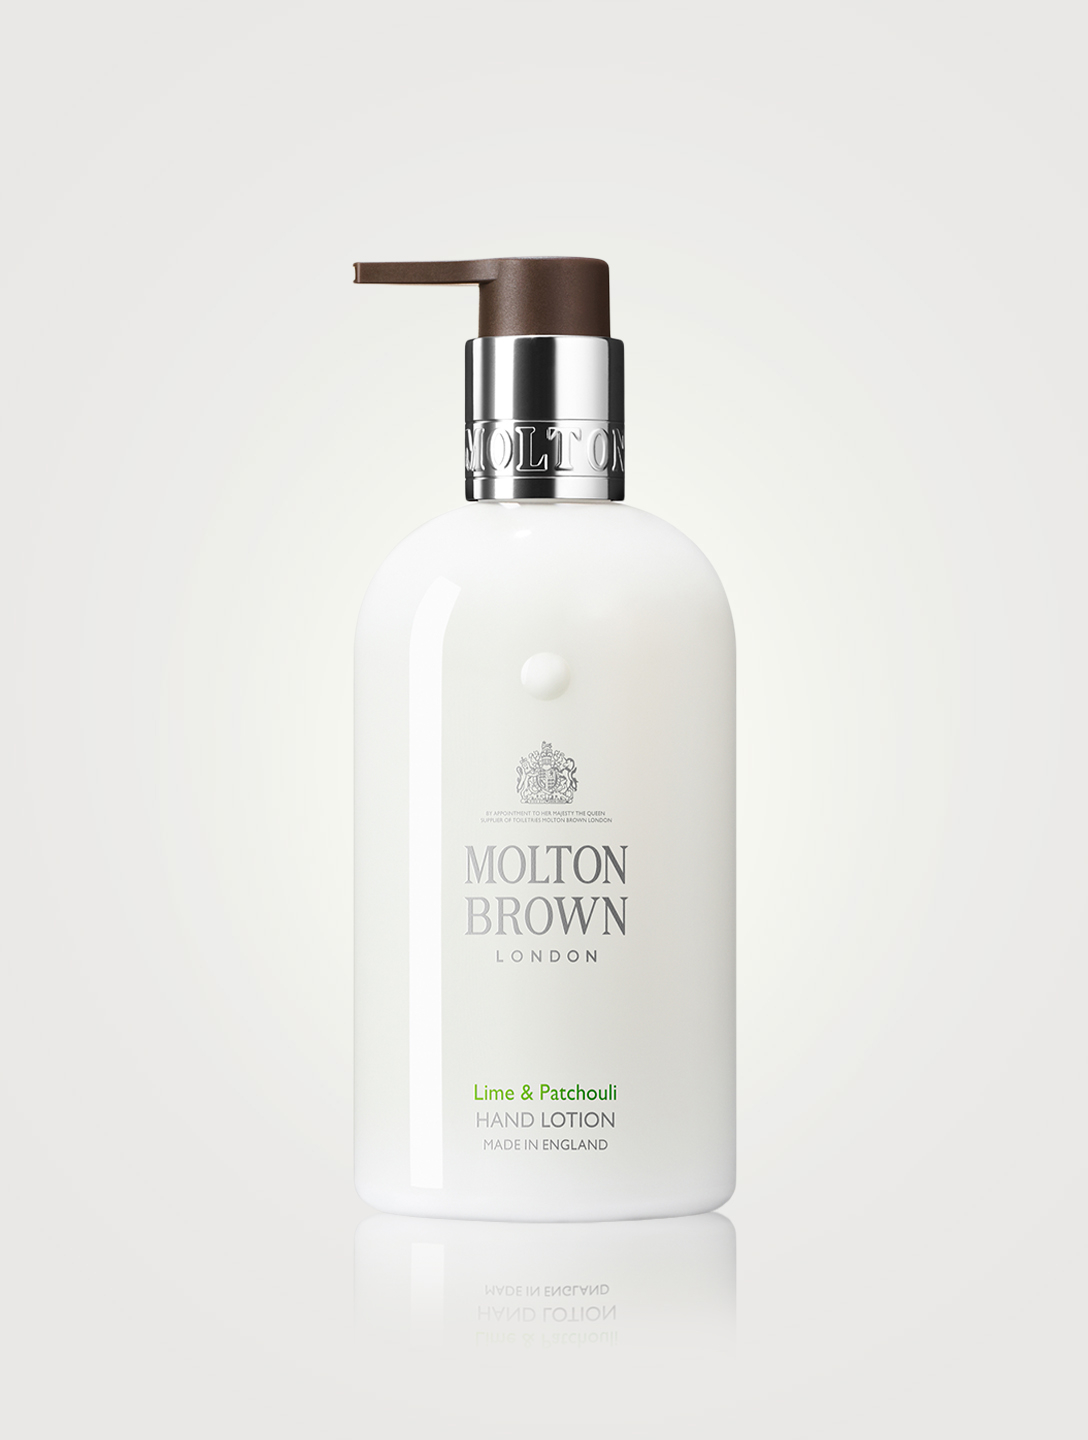 MOLTON BROWN Lime & Patchouli Hand Lotion Beauty